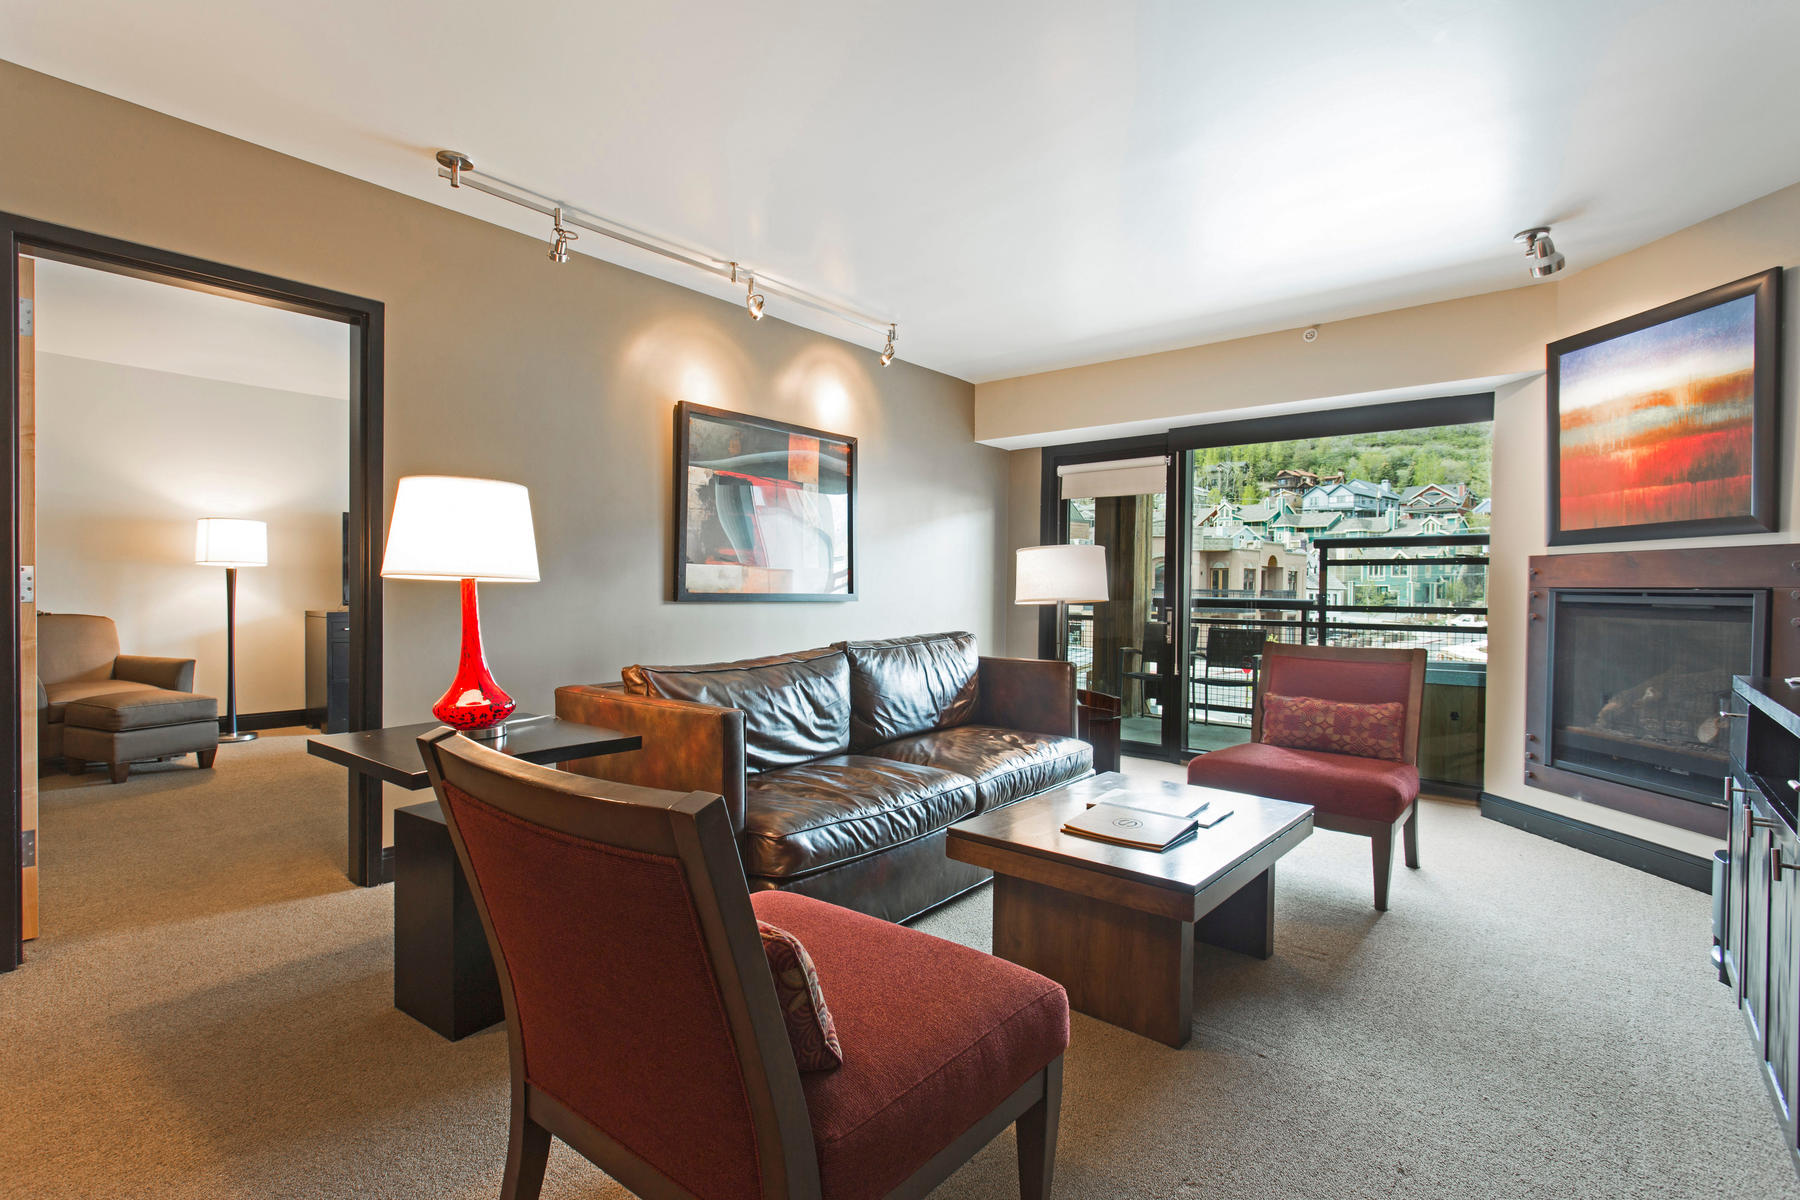 Fractional Ownership for Sale at Sky Lodge 3 bedroom Fractional in Heart of Old Town Park City 201 Heber Ave #303/203 Park City, Utah 84060 United States